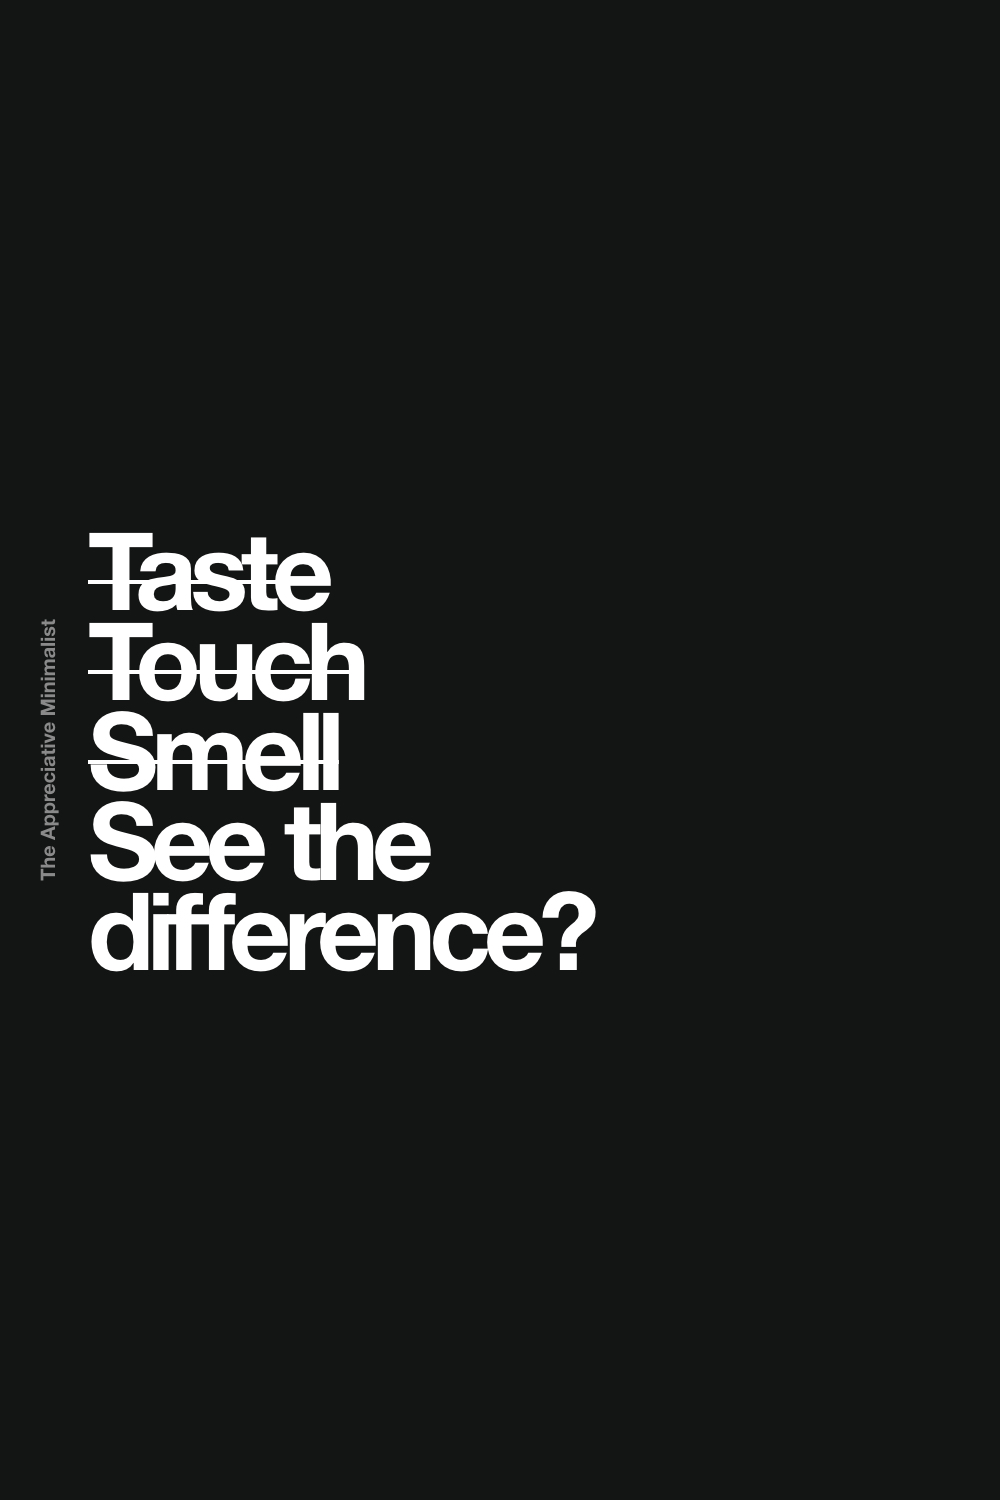 Taste Touch Smell See the difference?